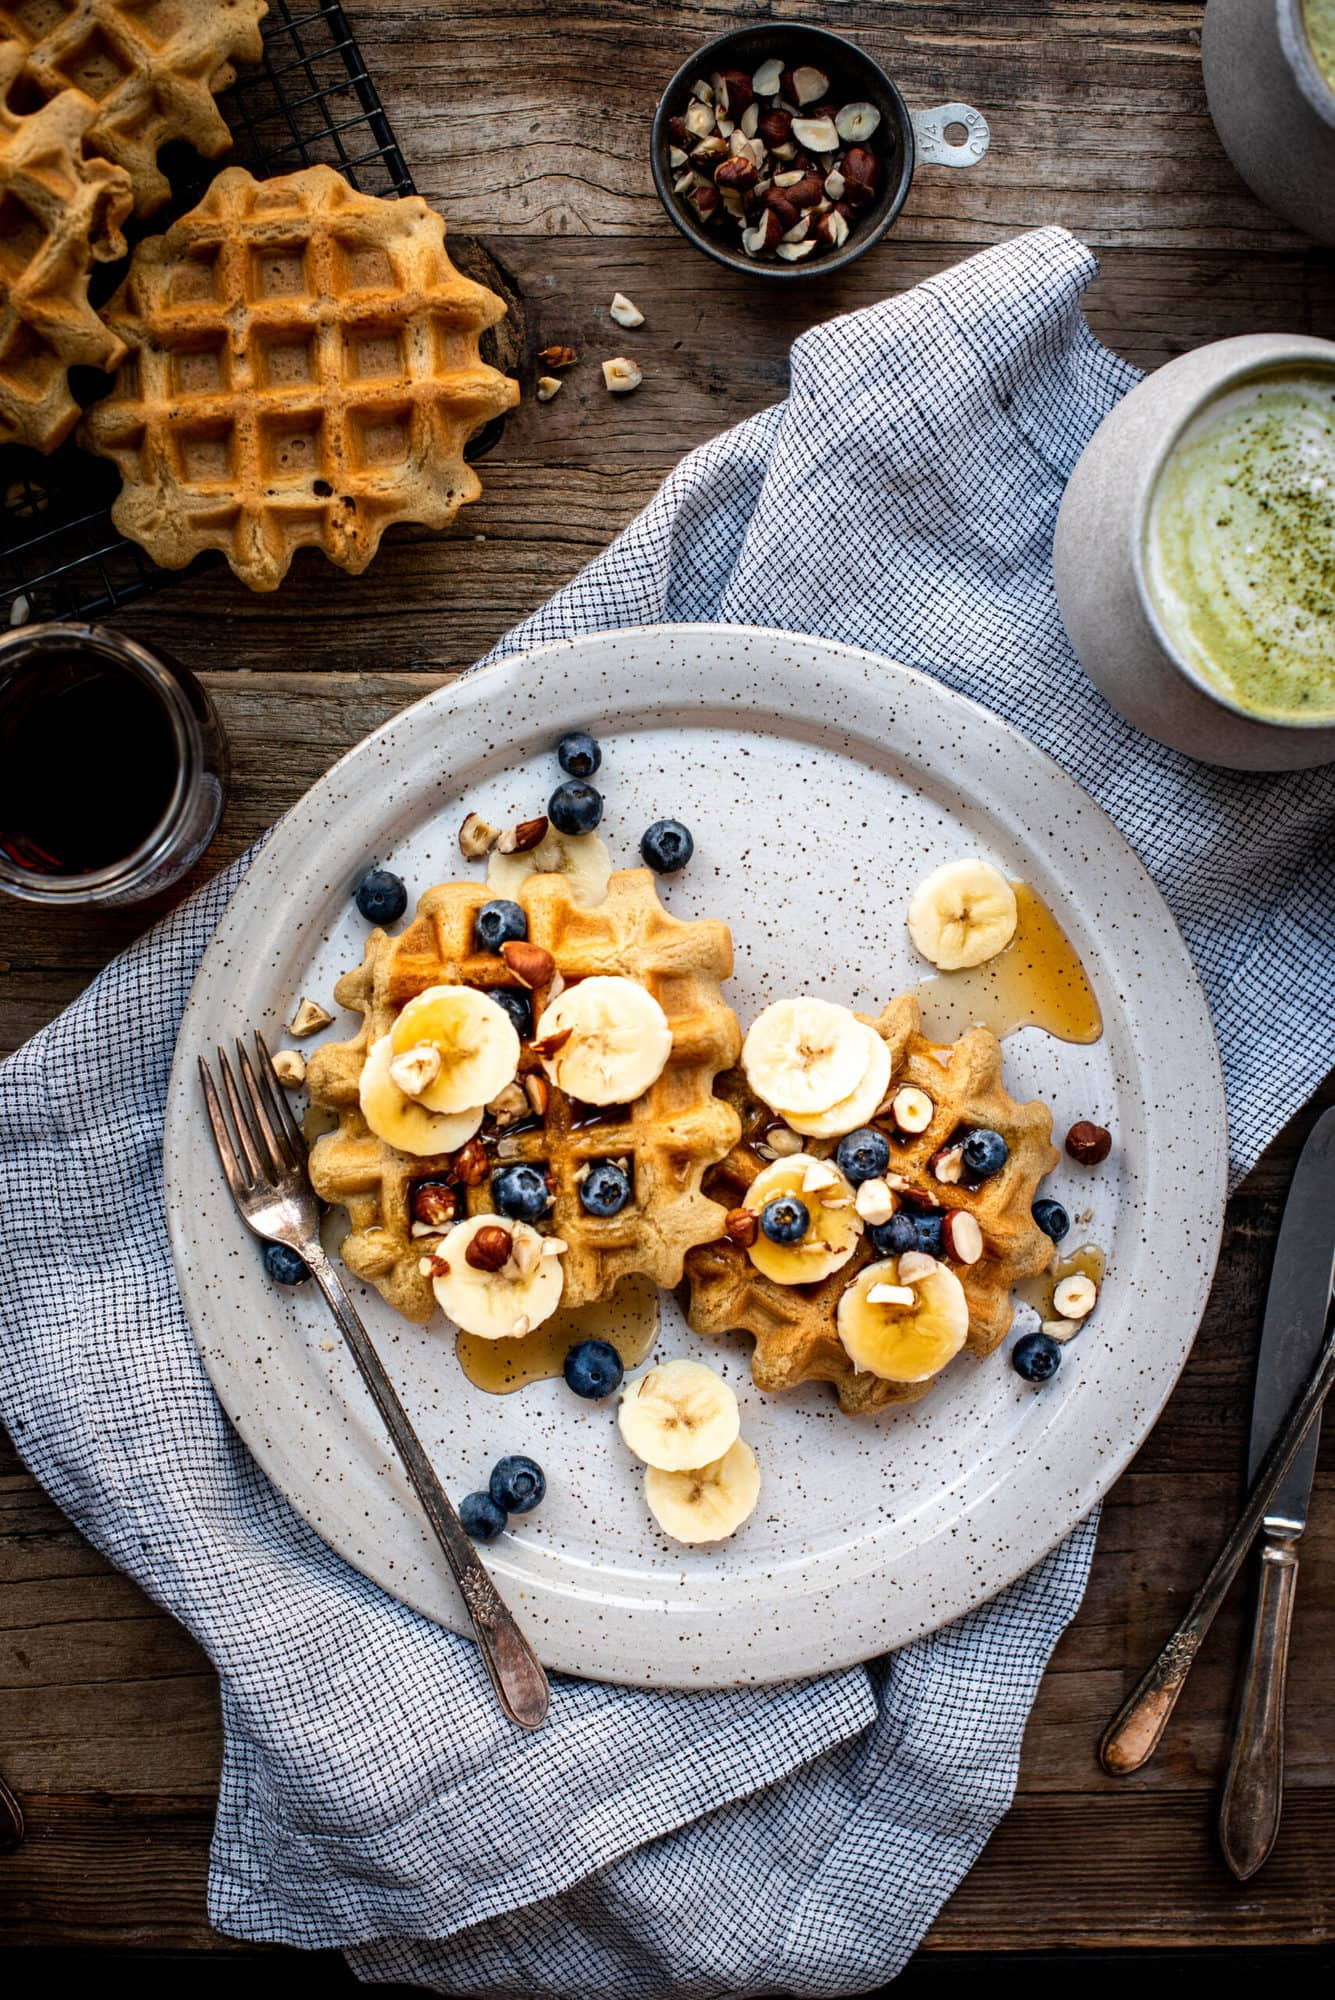 overhead view of waffles on plate with blueberries